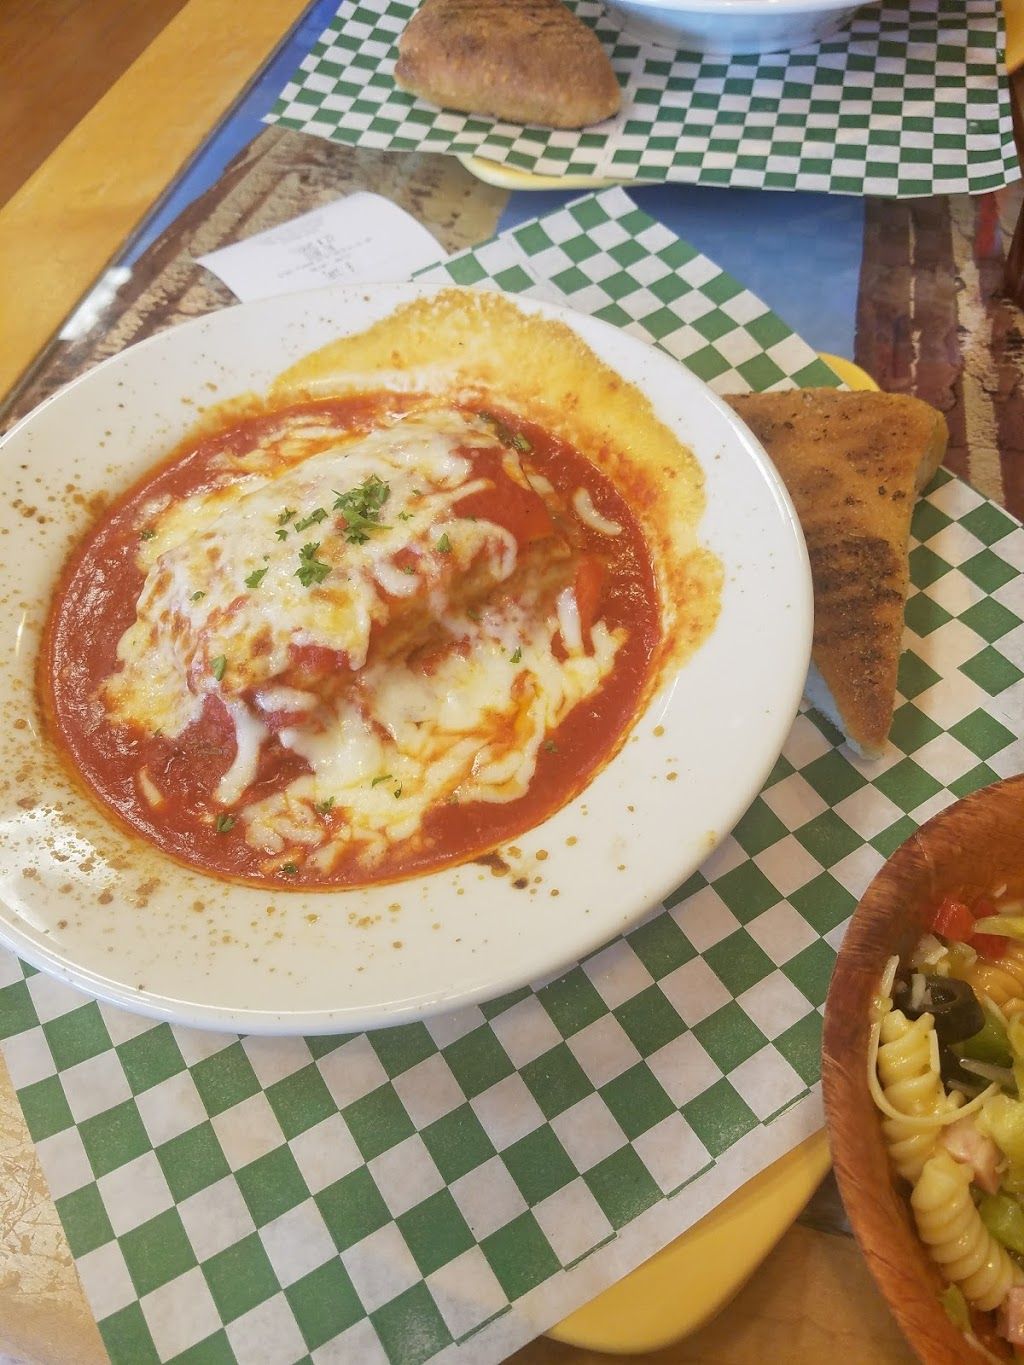 Luciano Family Pizzeria   meal delivery   8603 TX-151 ste 102, San Antonio, TX 78245, USA   2106844900 OR +1 210-684-4900